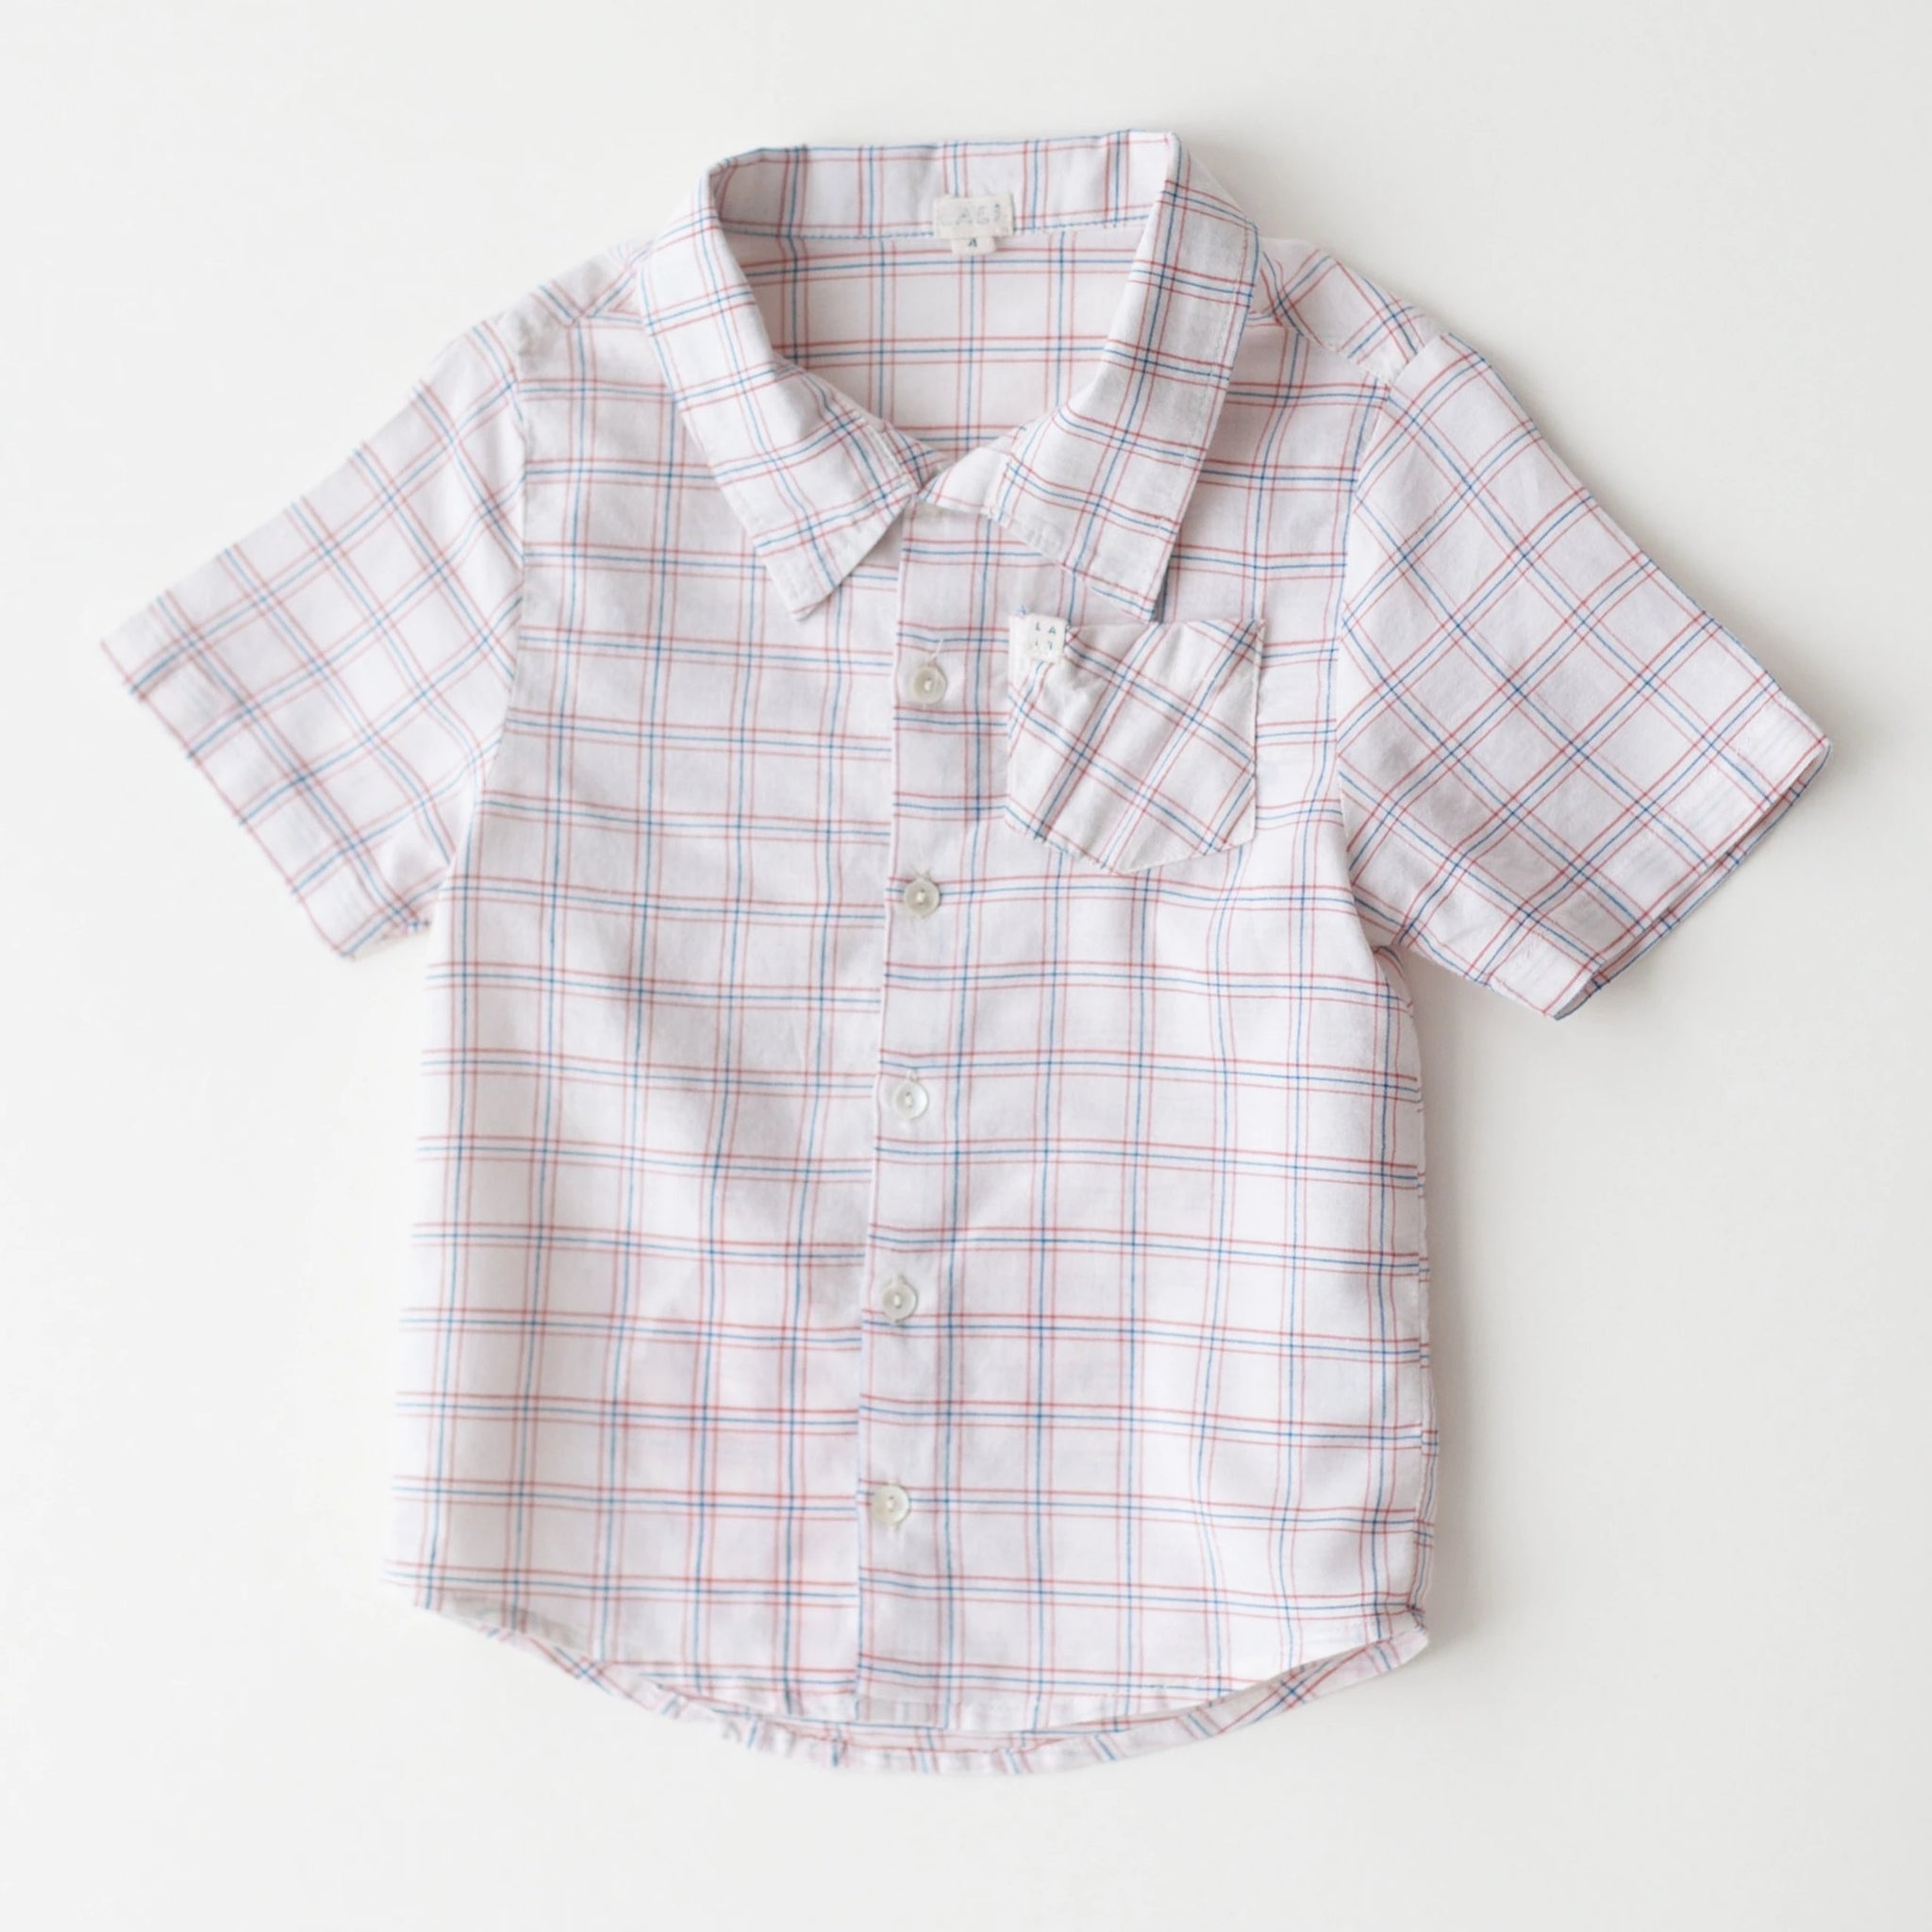 Boys Thistle Shirt - White Chex